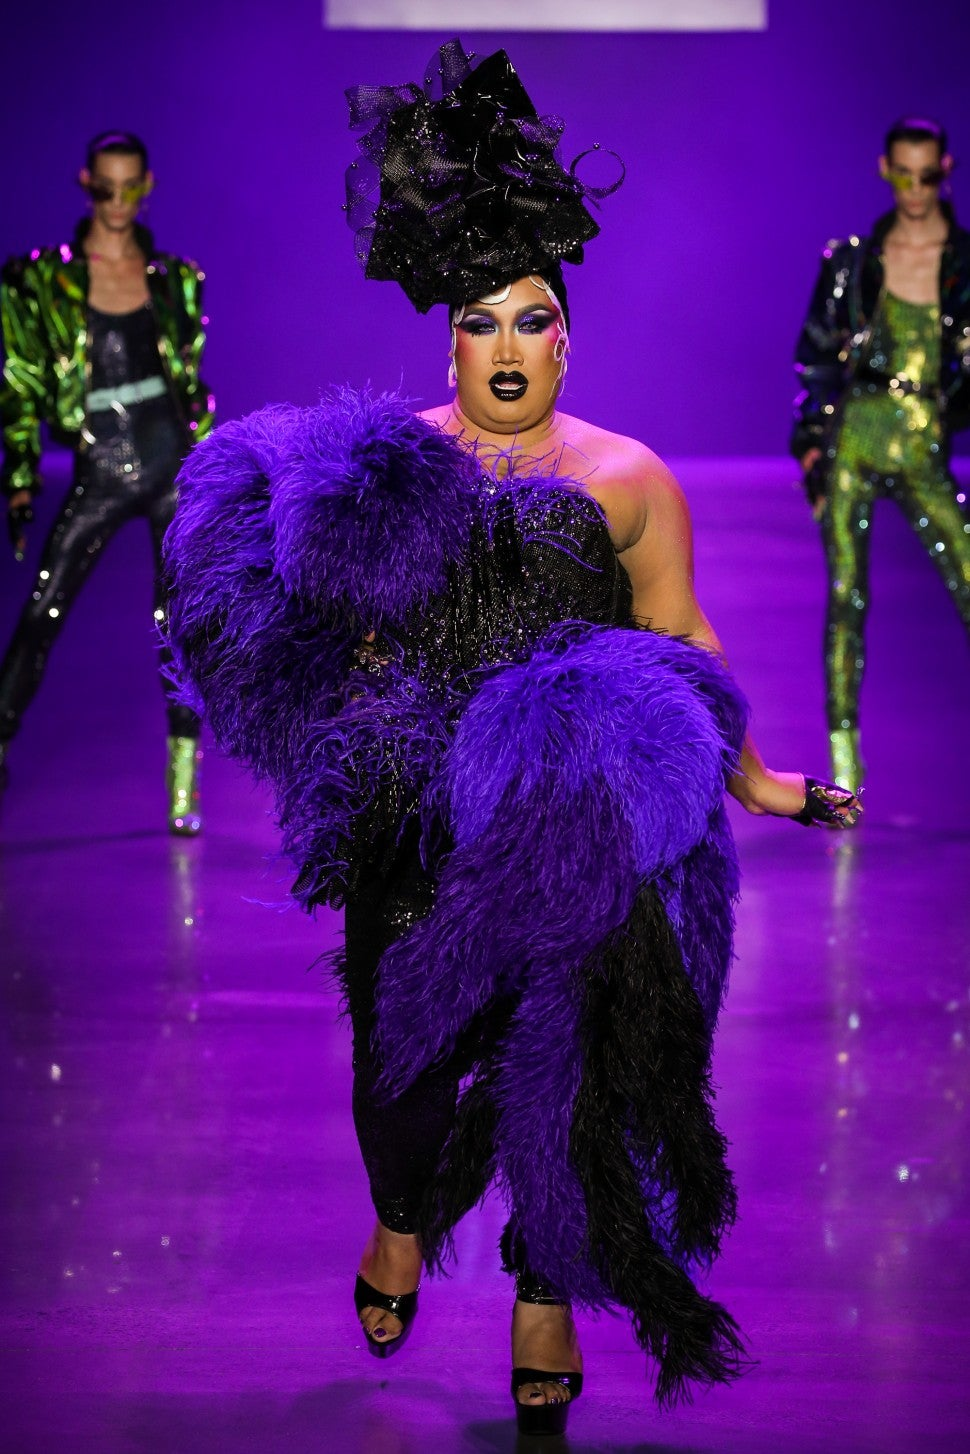 Patrick Starrr Disney Villains x The Blonds fashion show